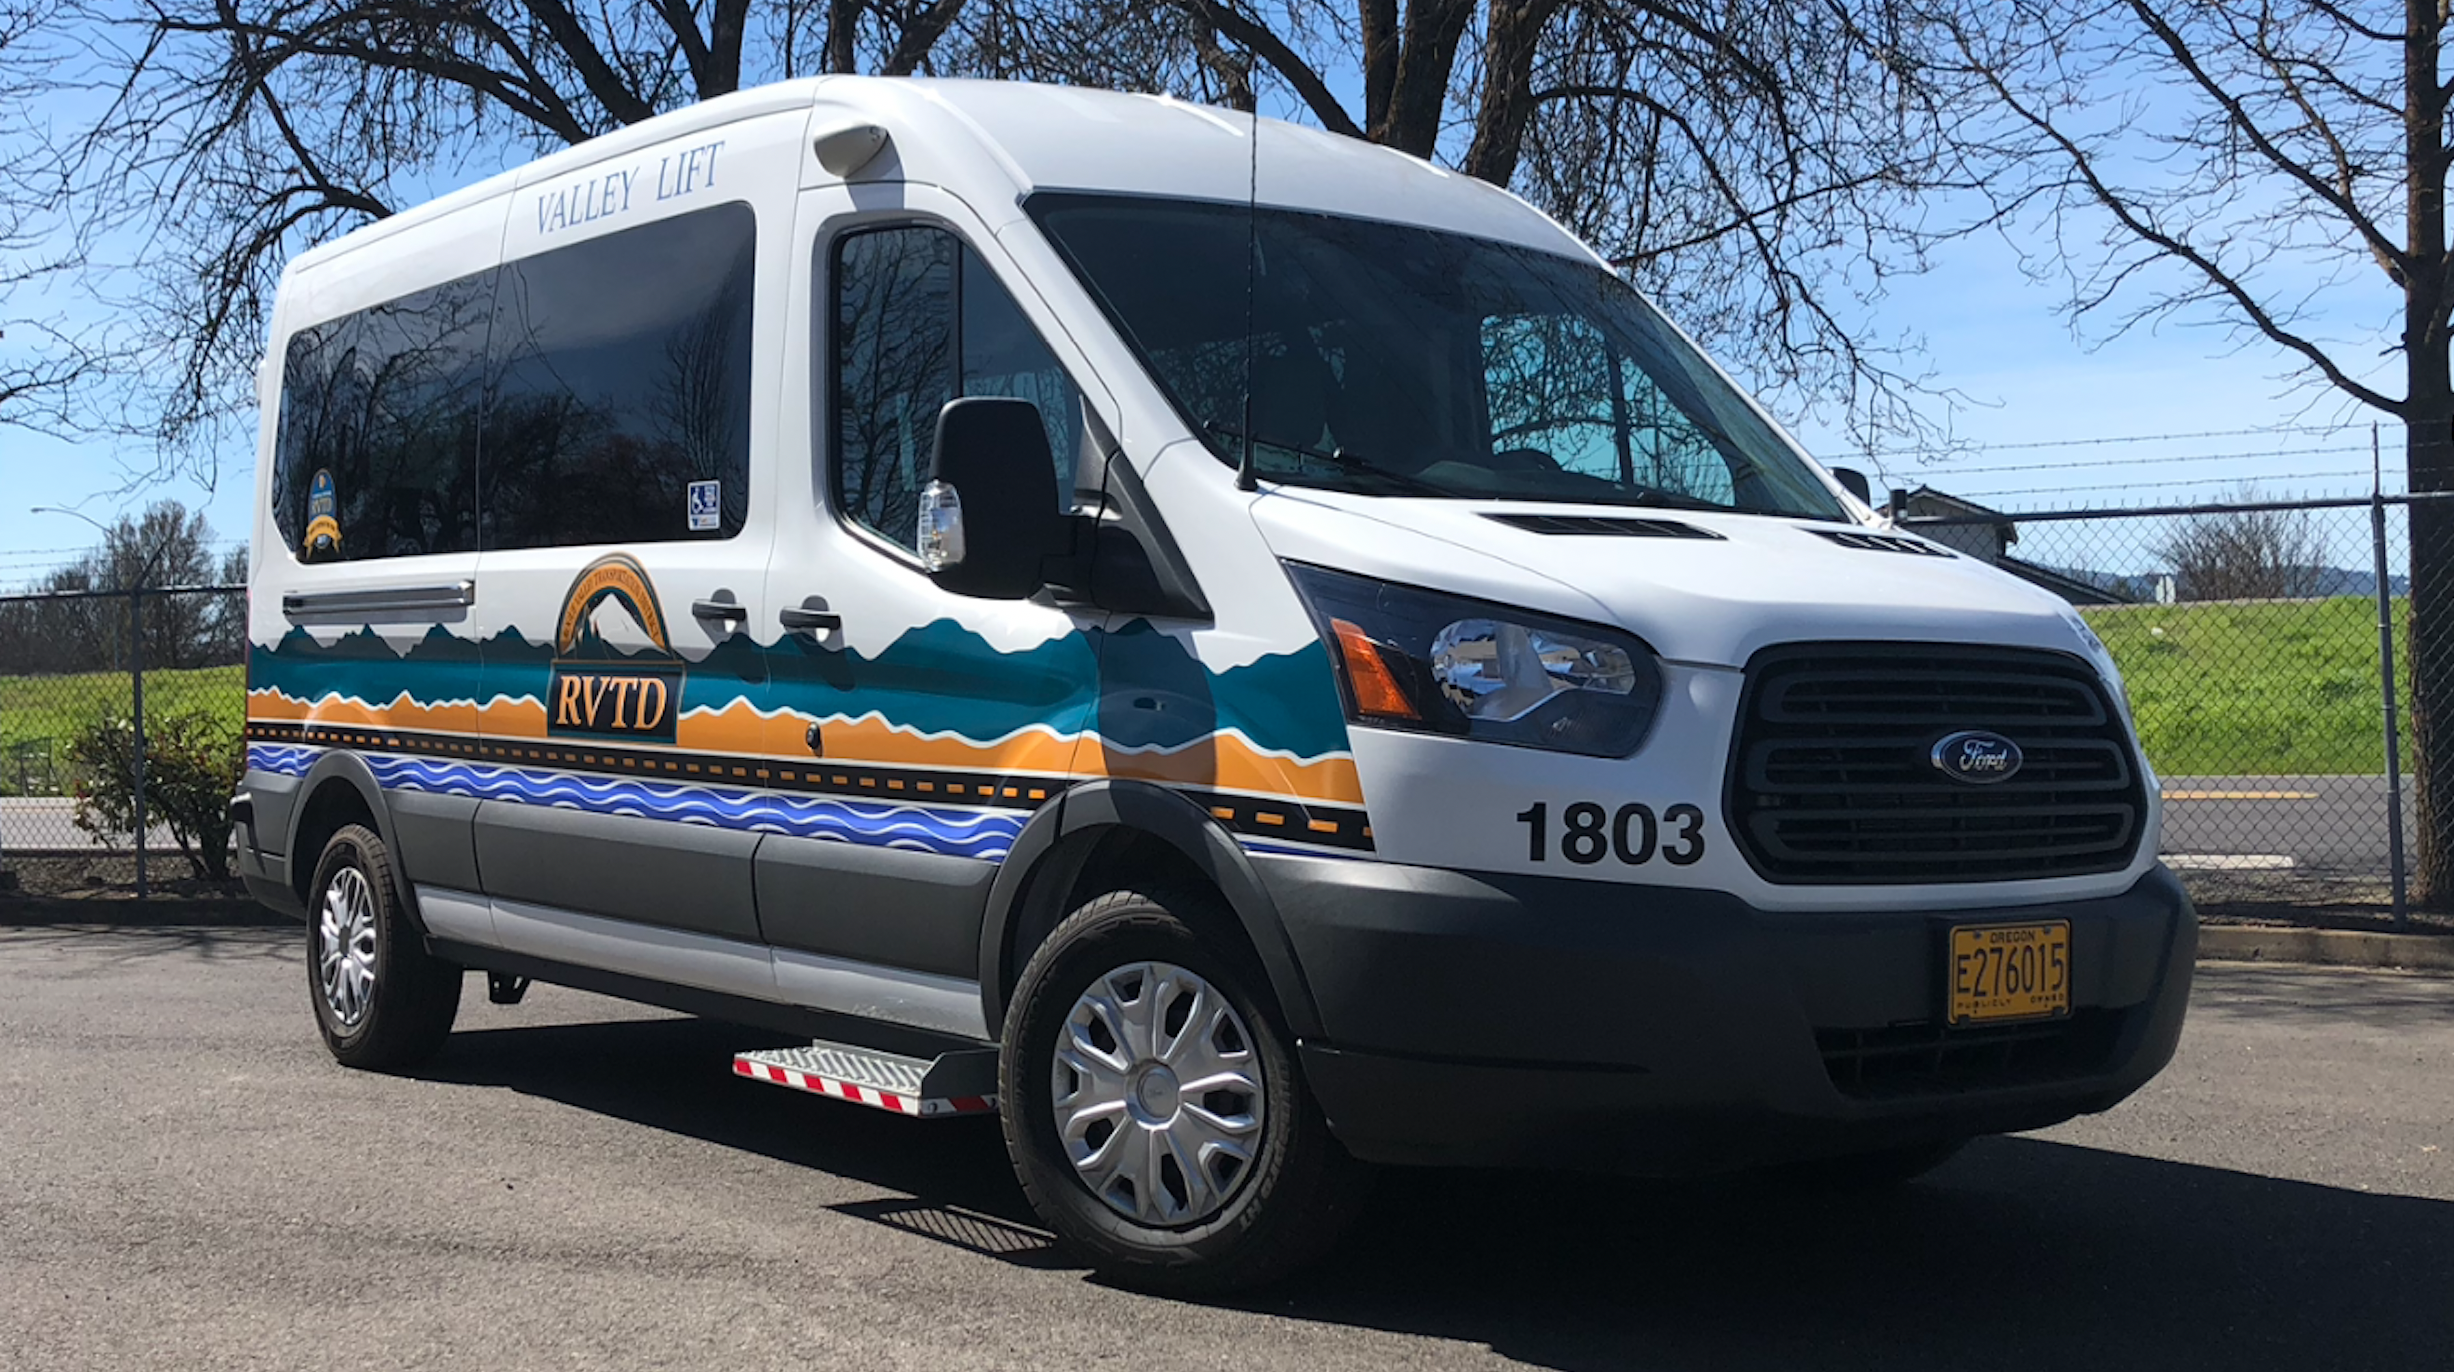 Rogue Valley Transportation District In Oregon Announced That Six Xl Hybrid Electric Hev Penger Vans It Recently Acquired Are Already Providing